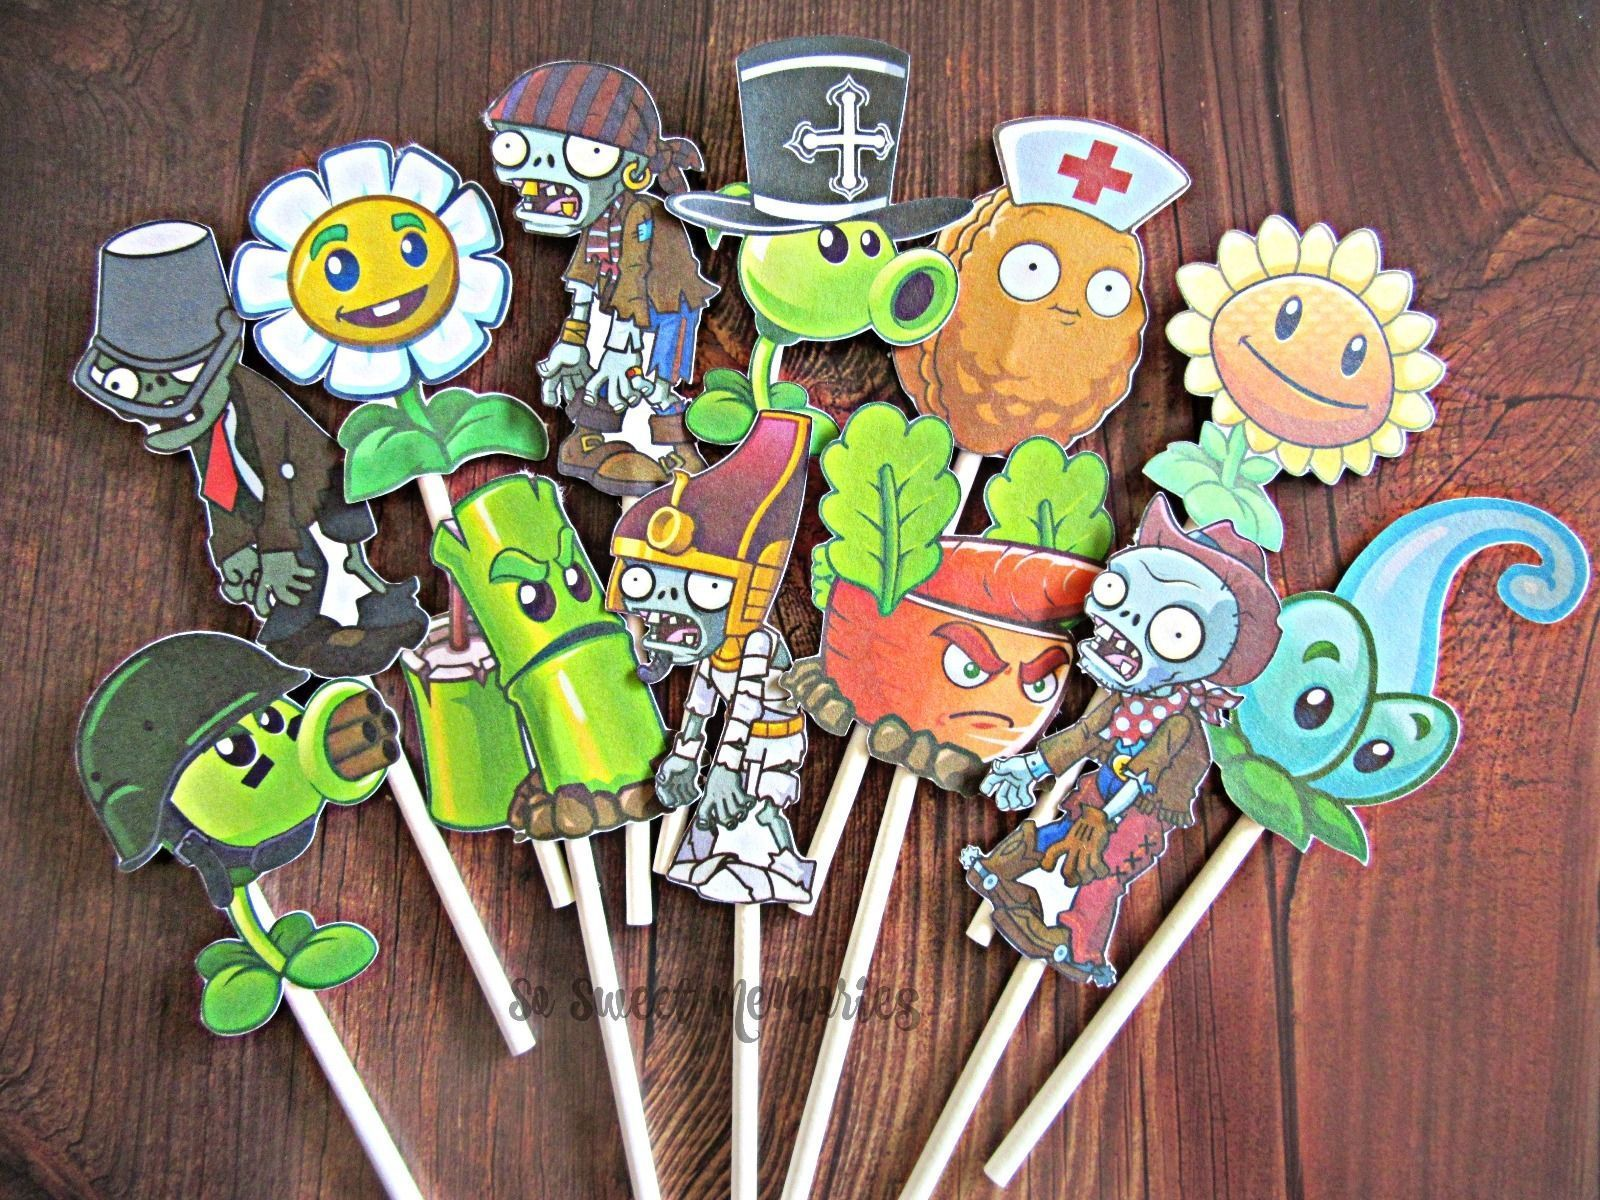 12 plants vs zombies cupcake and cake toppers birthday party supplies - Zombie Party Supplies